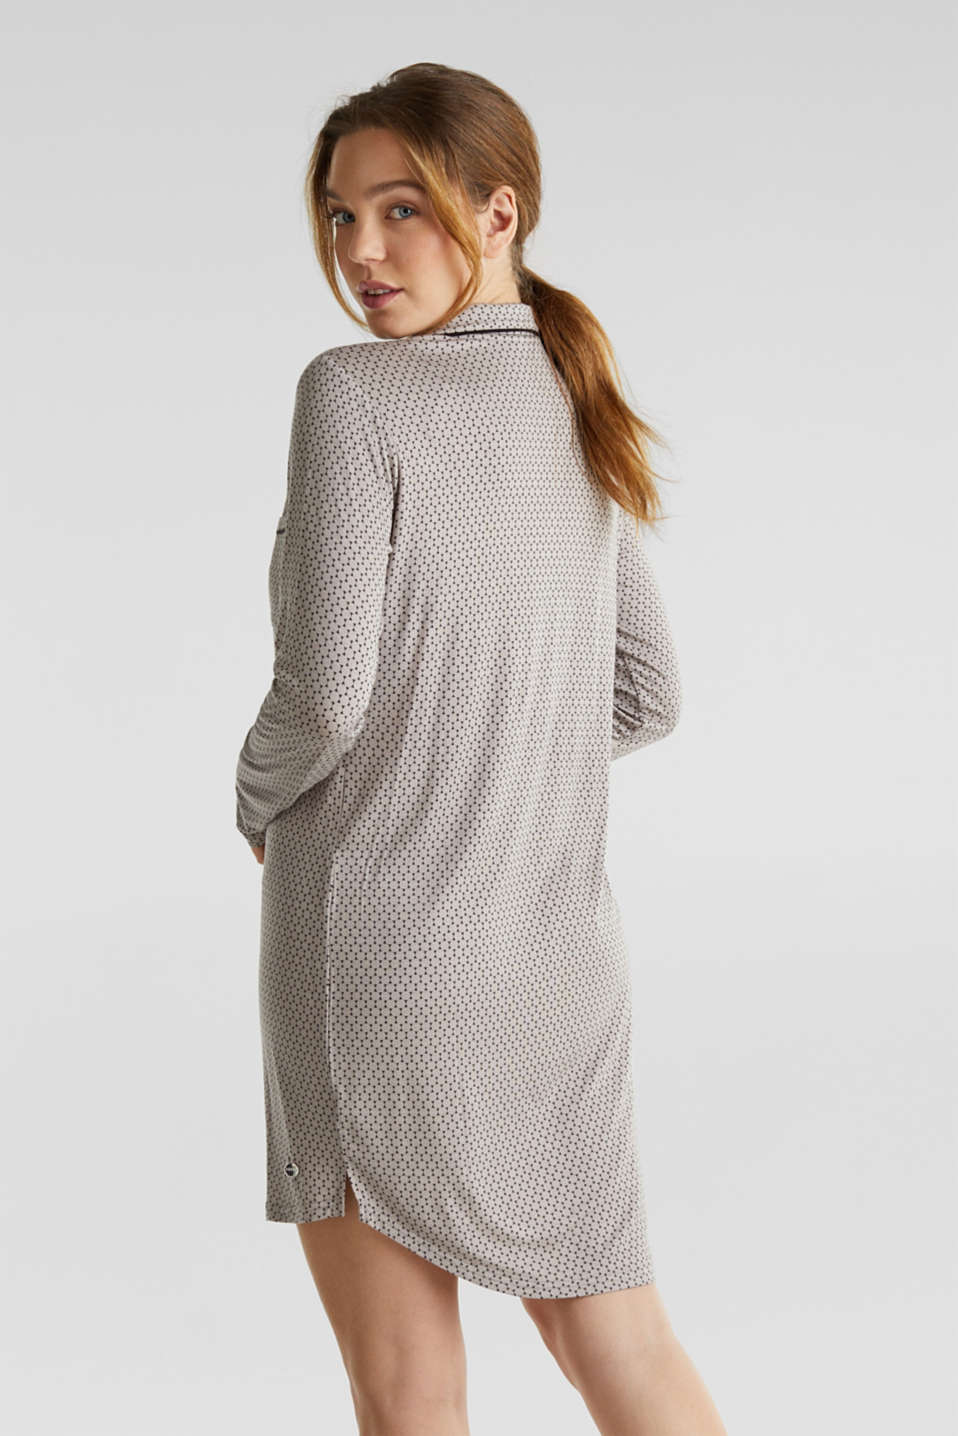 Stretch jersey nightshirt with a graphic print, LIGHT TAUPE, detail image number 1